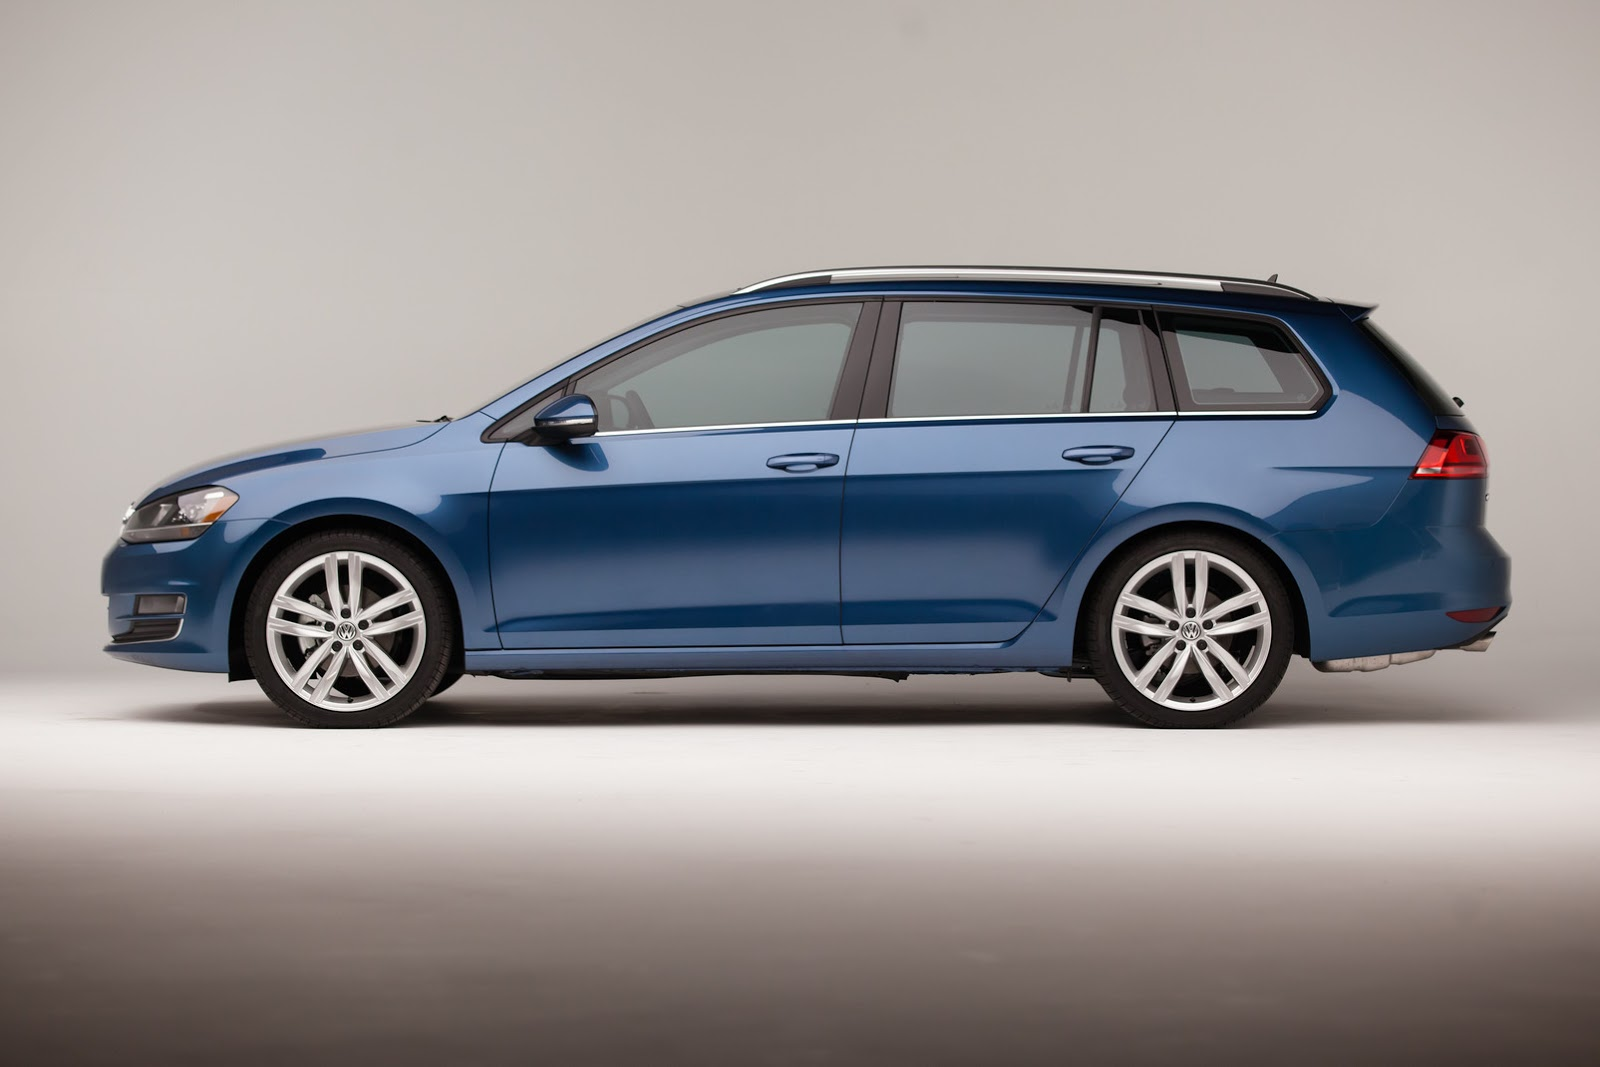 2015 vw golf wagon prices start from 21 395 autoevolution. Black Bedroom Furniture Sets. Home Design Ideas